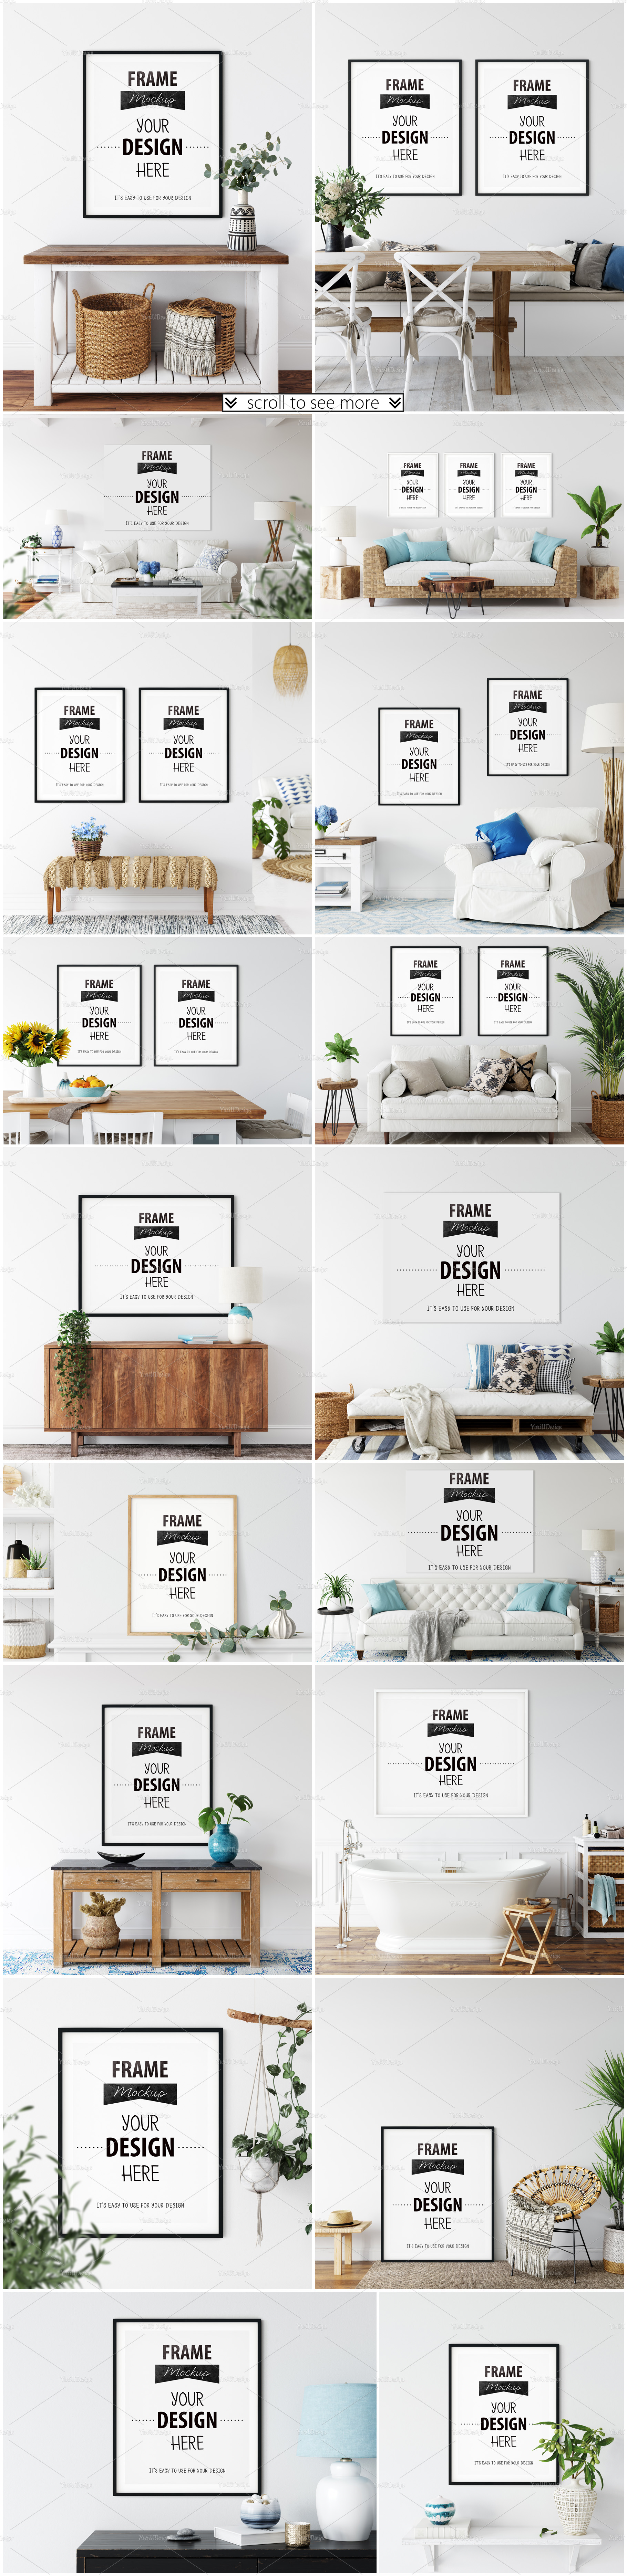 Frames & Walls Coastal Mockups Bundle example image 3